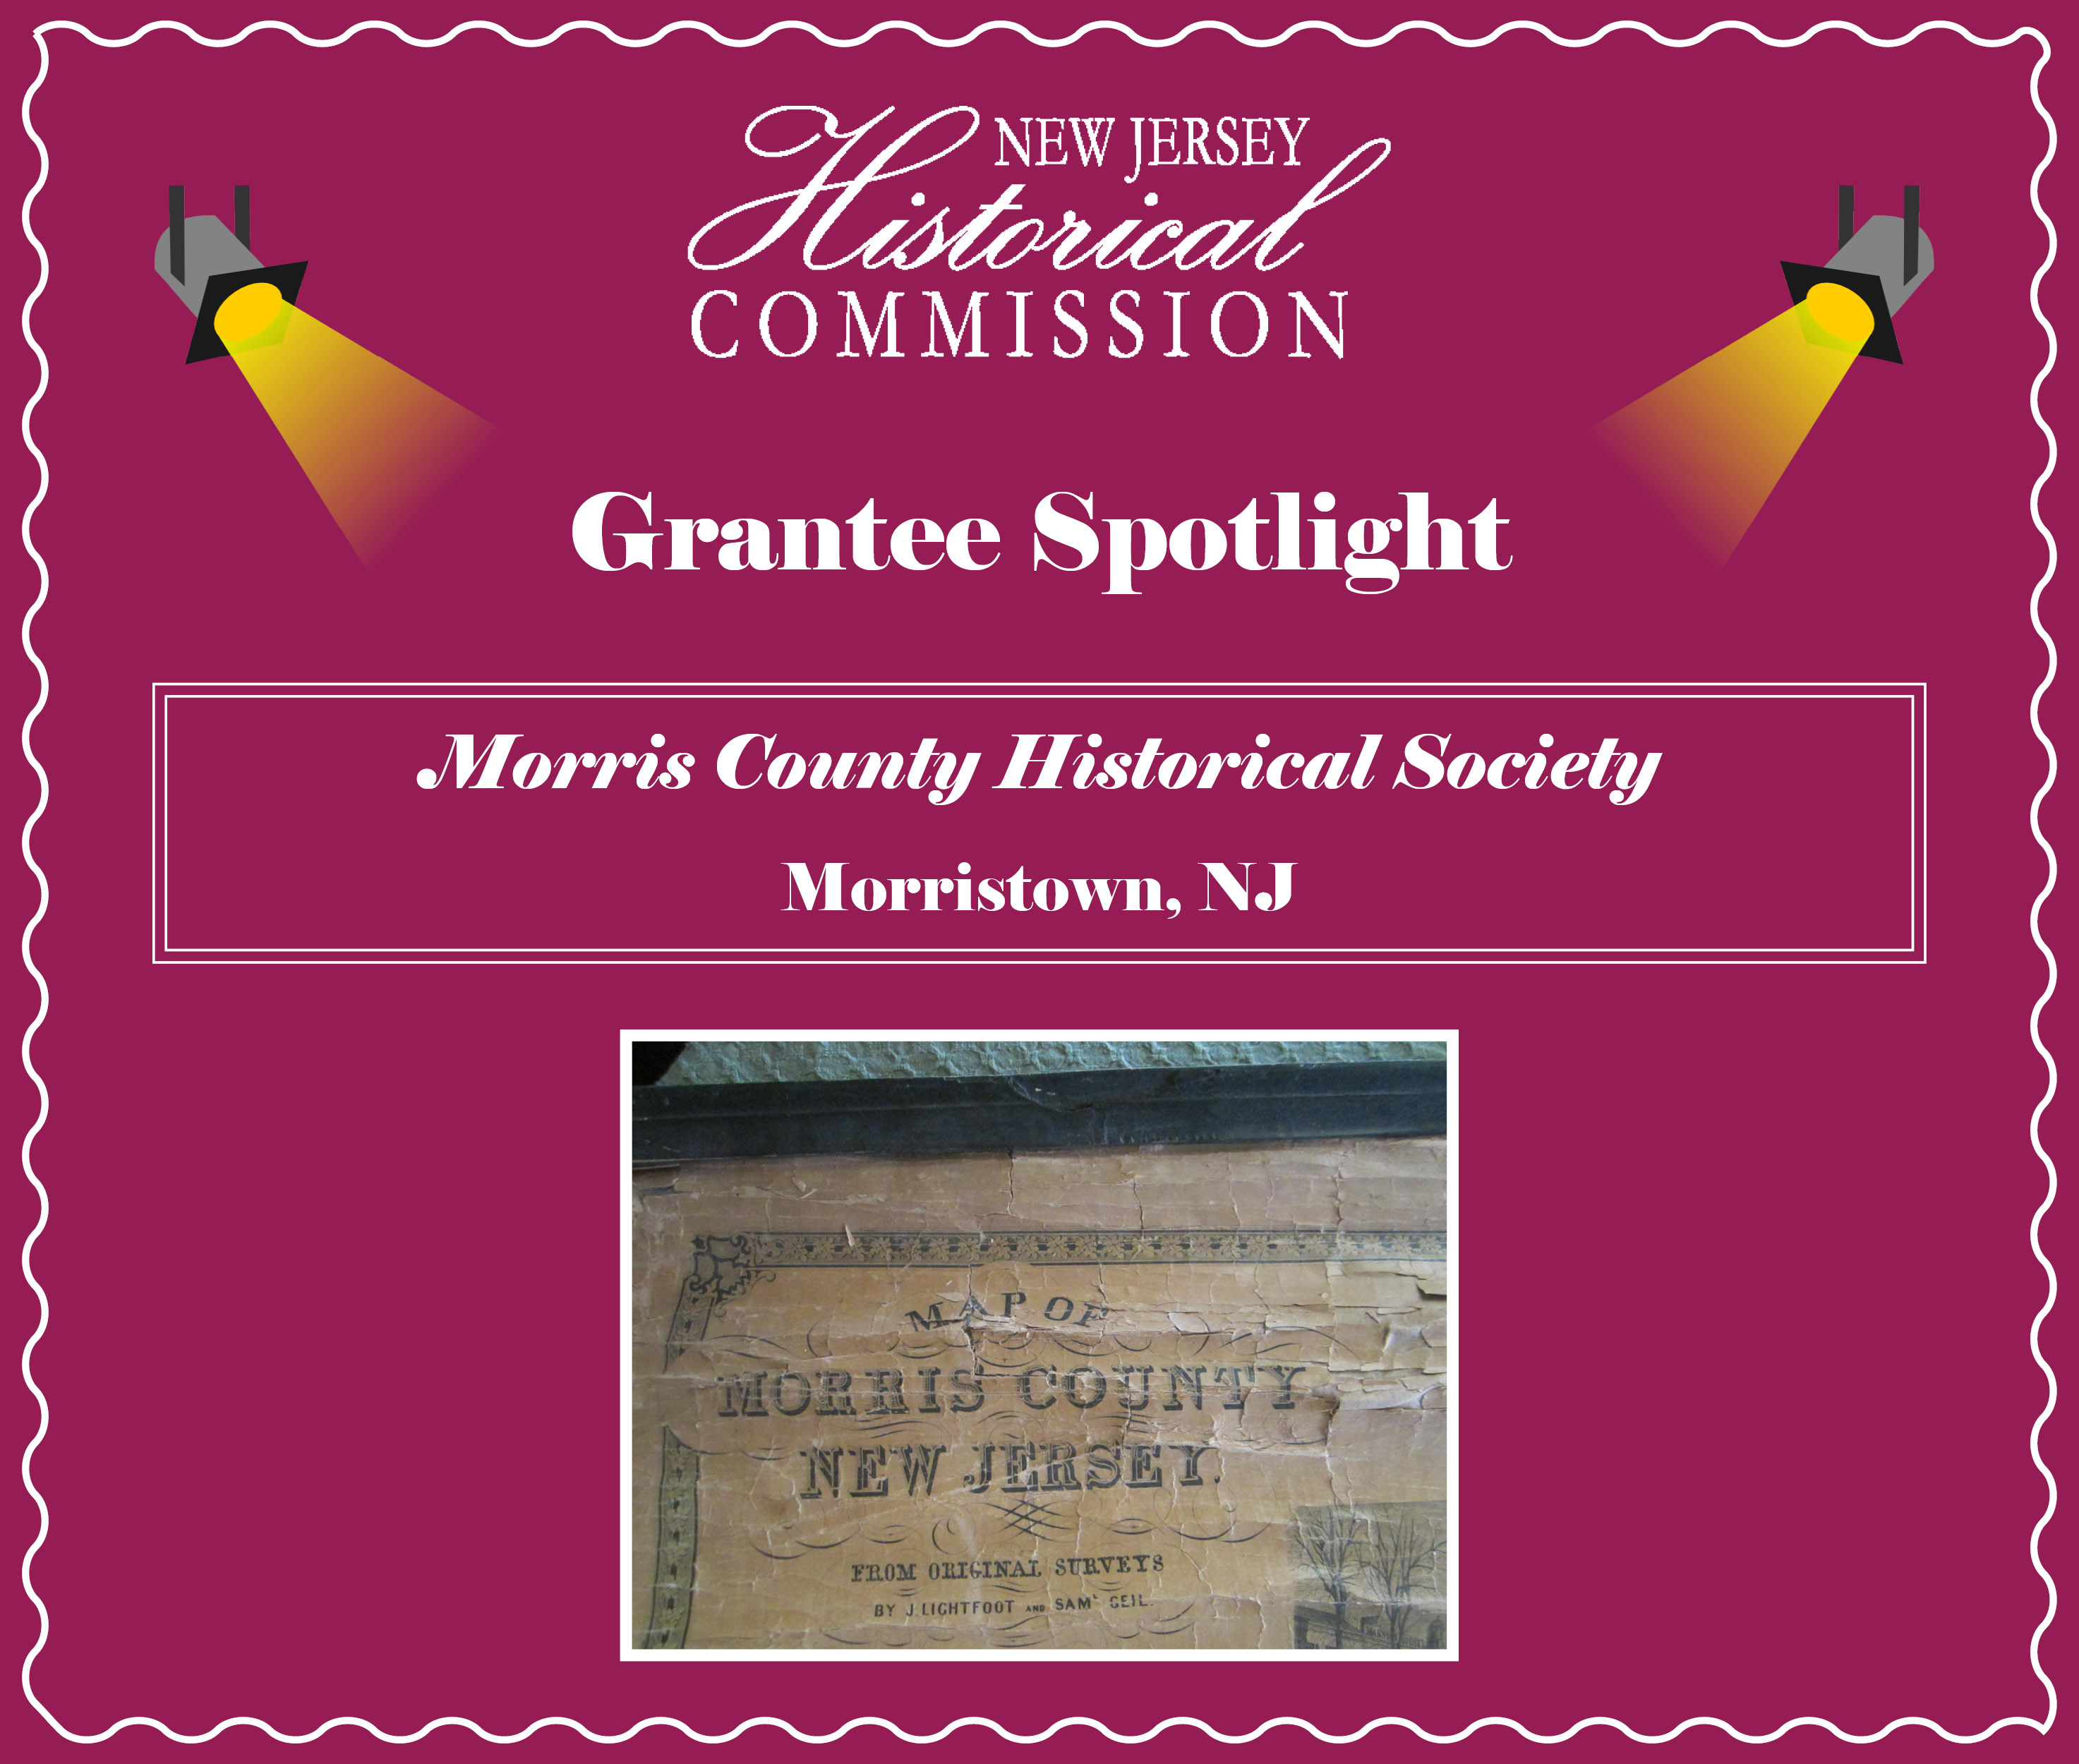 New Jersey Historical Commission (NJHC) Grantee Spotlight: Morris County Historical Society